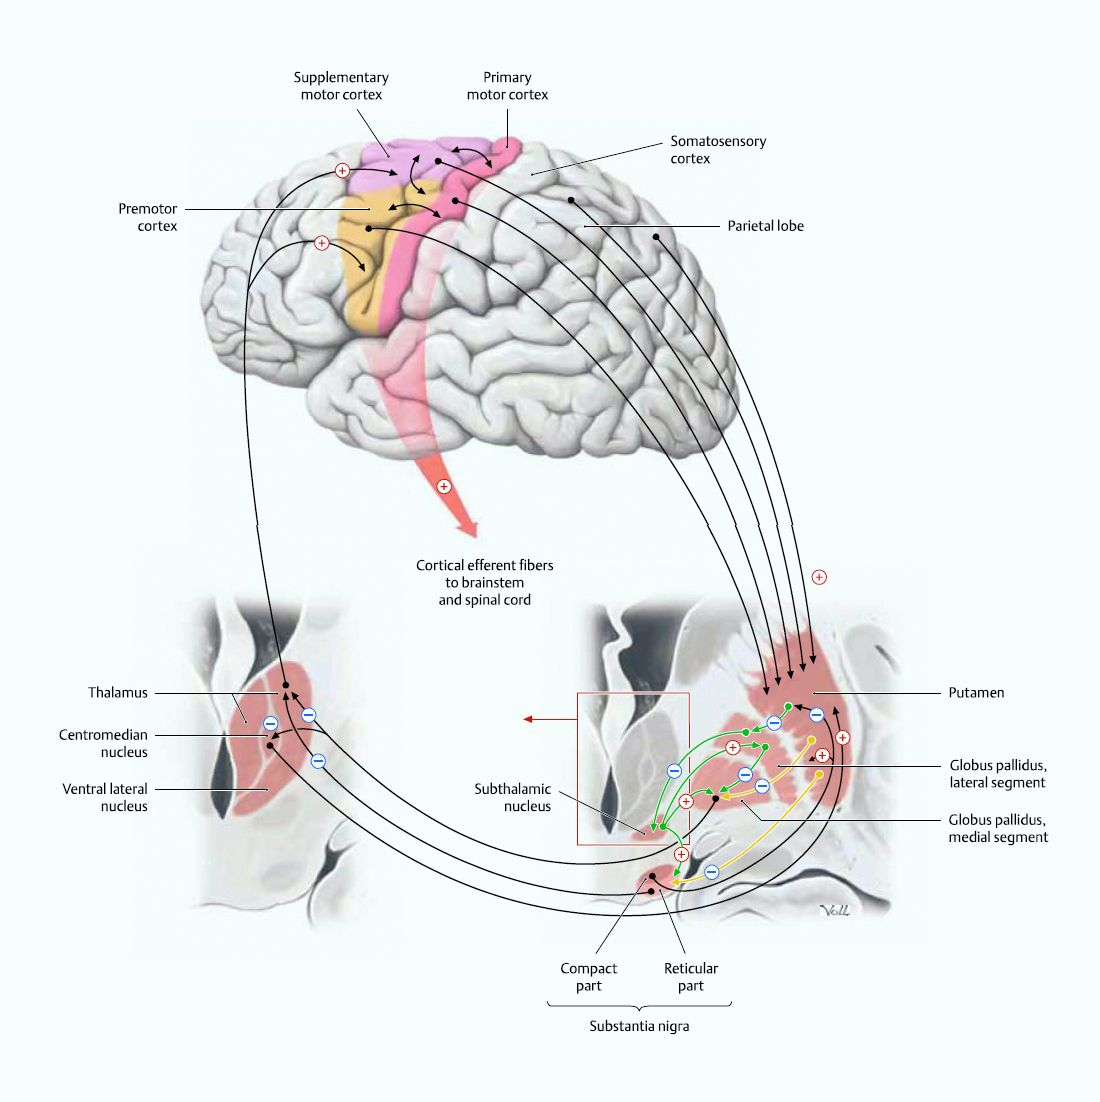 Flow of information between motor cortical areas and basal ganglia ...